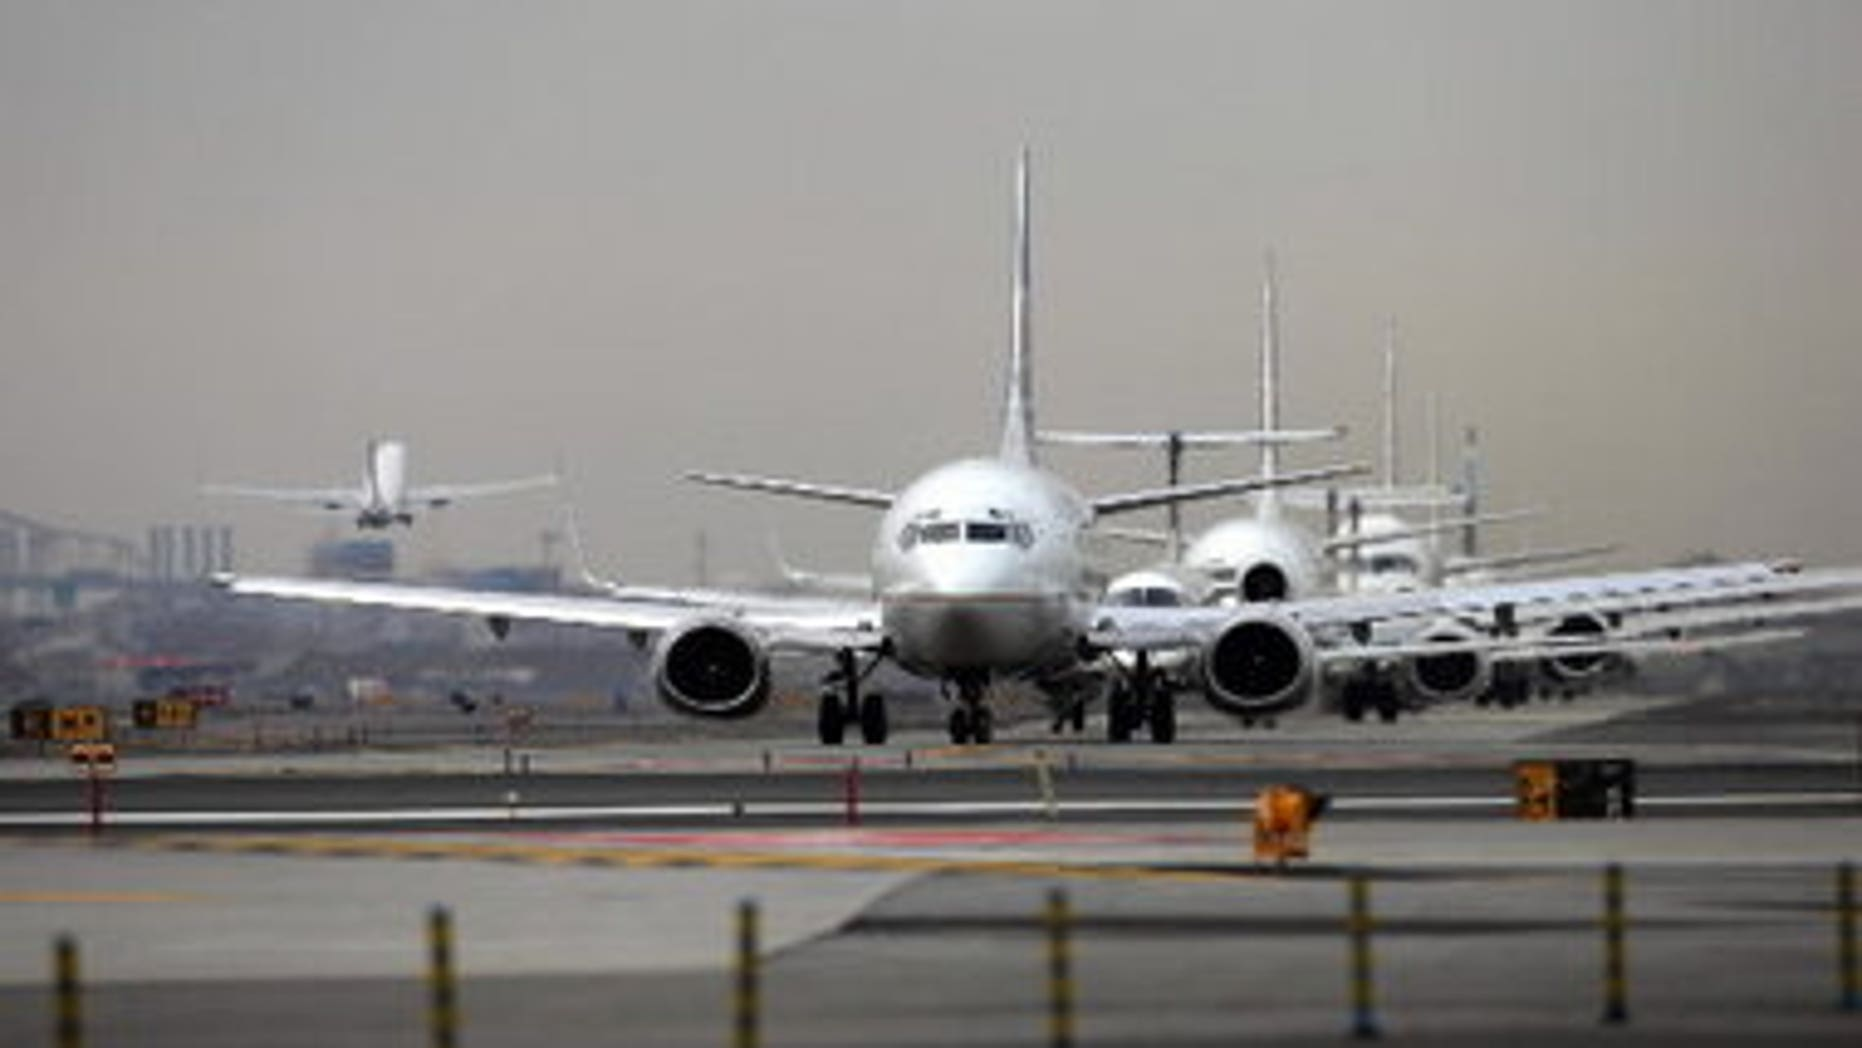 Planes wait to depart from Newark Liberty International Airport in New Jersey, one of the country's busiest airports.